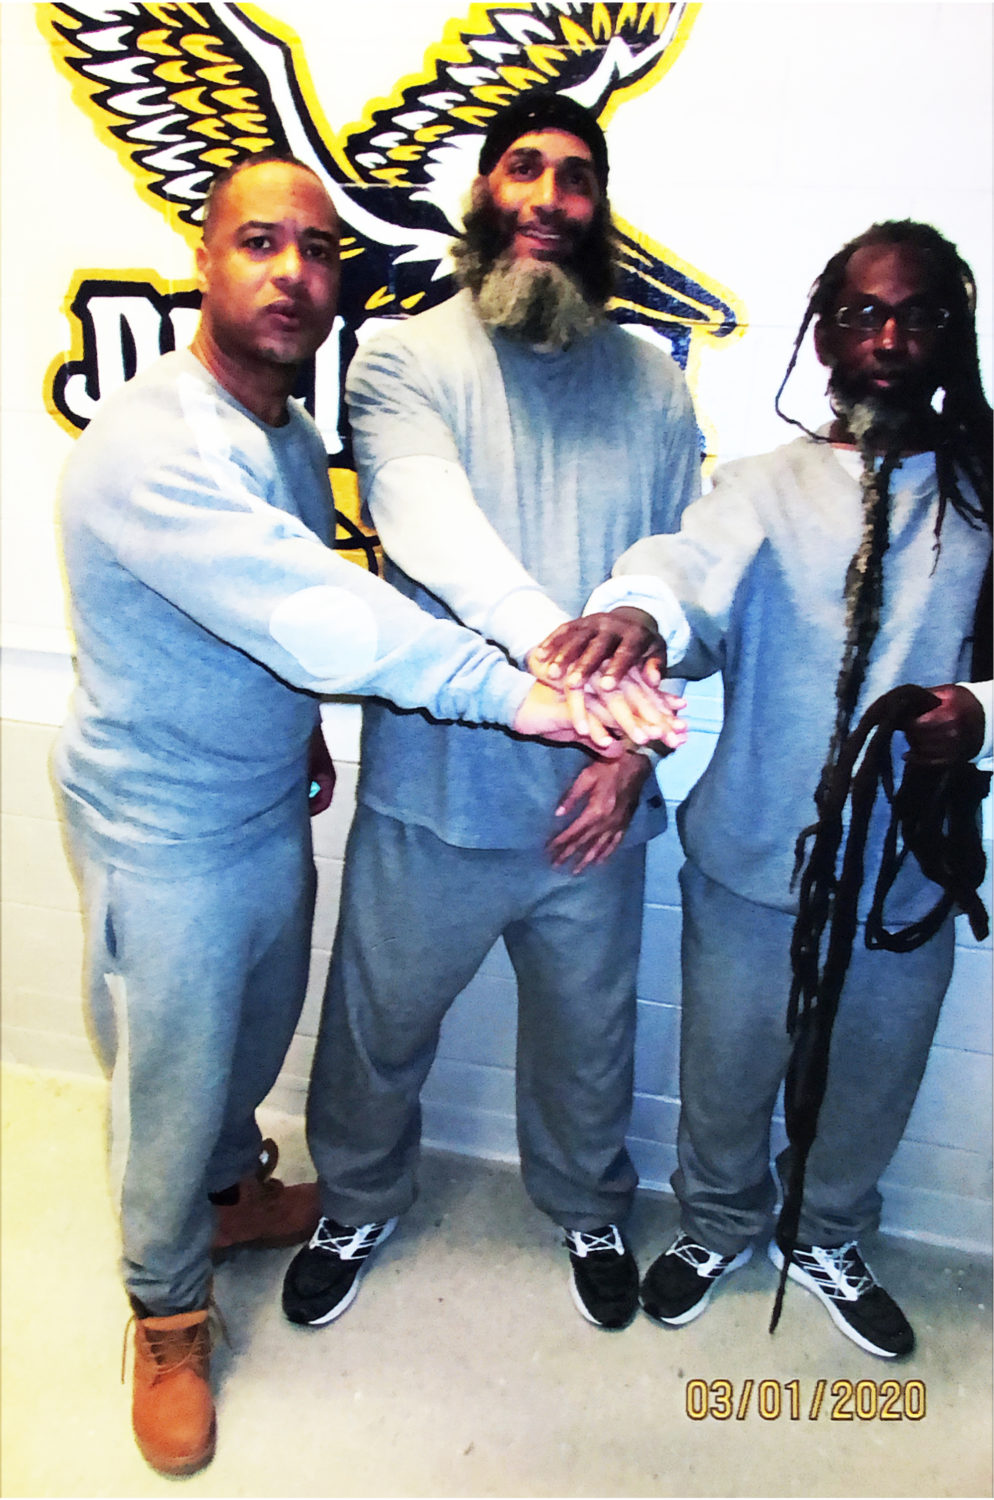 Comrade-Malik-flanked-by-Ice-Hisan-Lee-Kush-I-Robert-T.-Smith-USP-Pollock-030120, Comrade Malik: Is prison authorities' real plan 'Let the prisoners die'?, Behind Enemy Lines